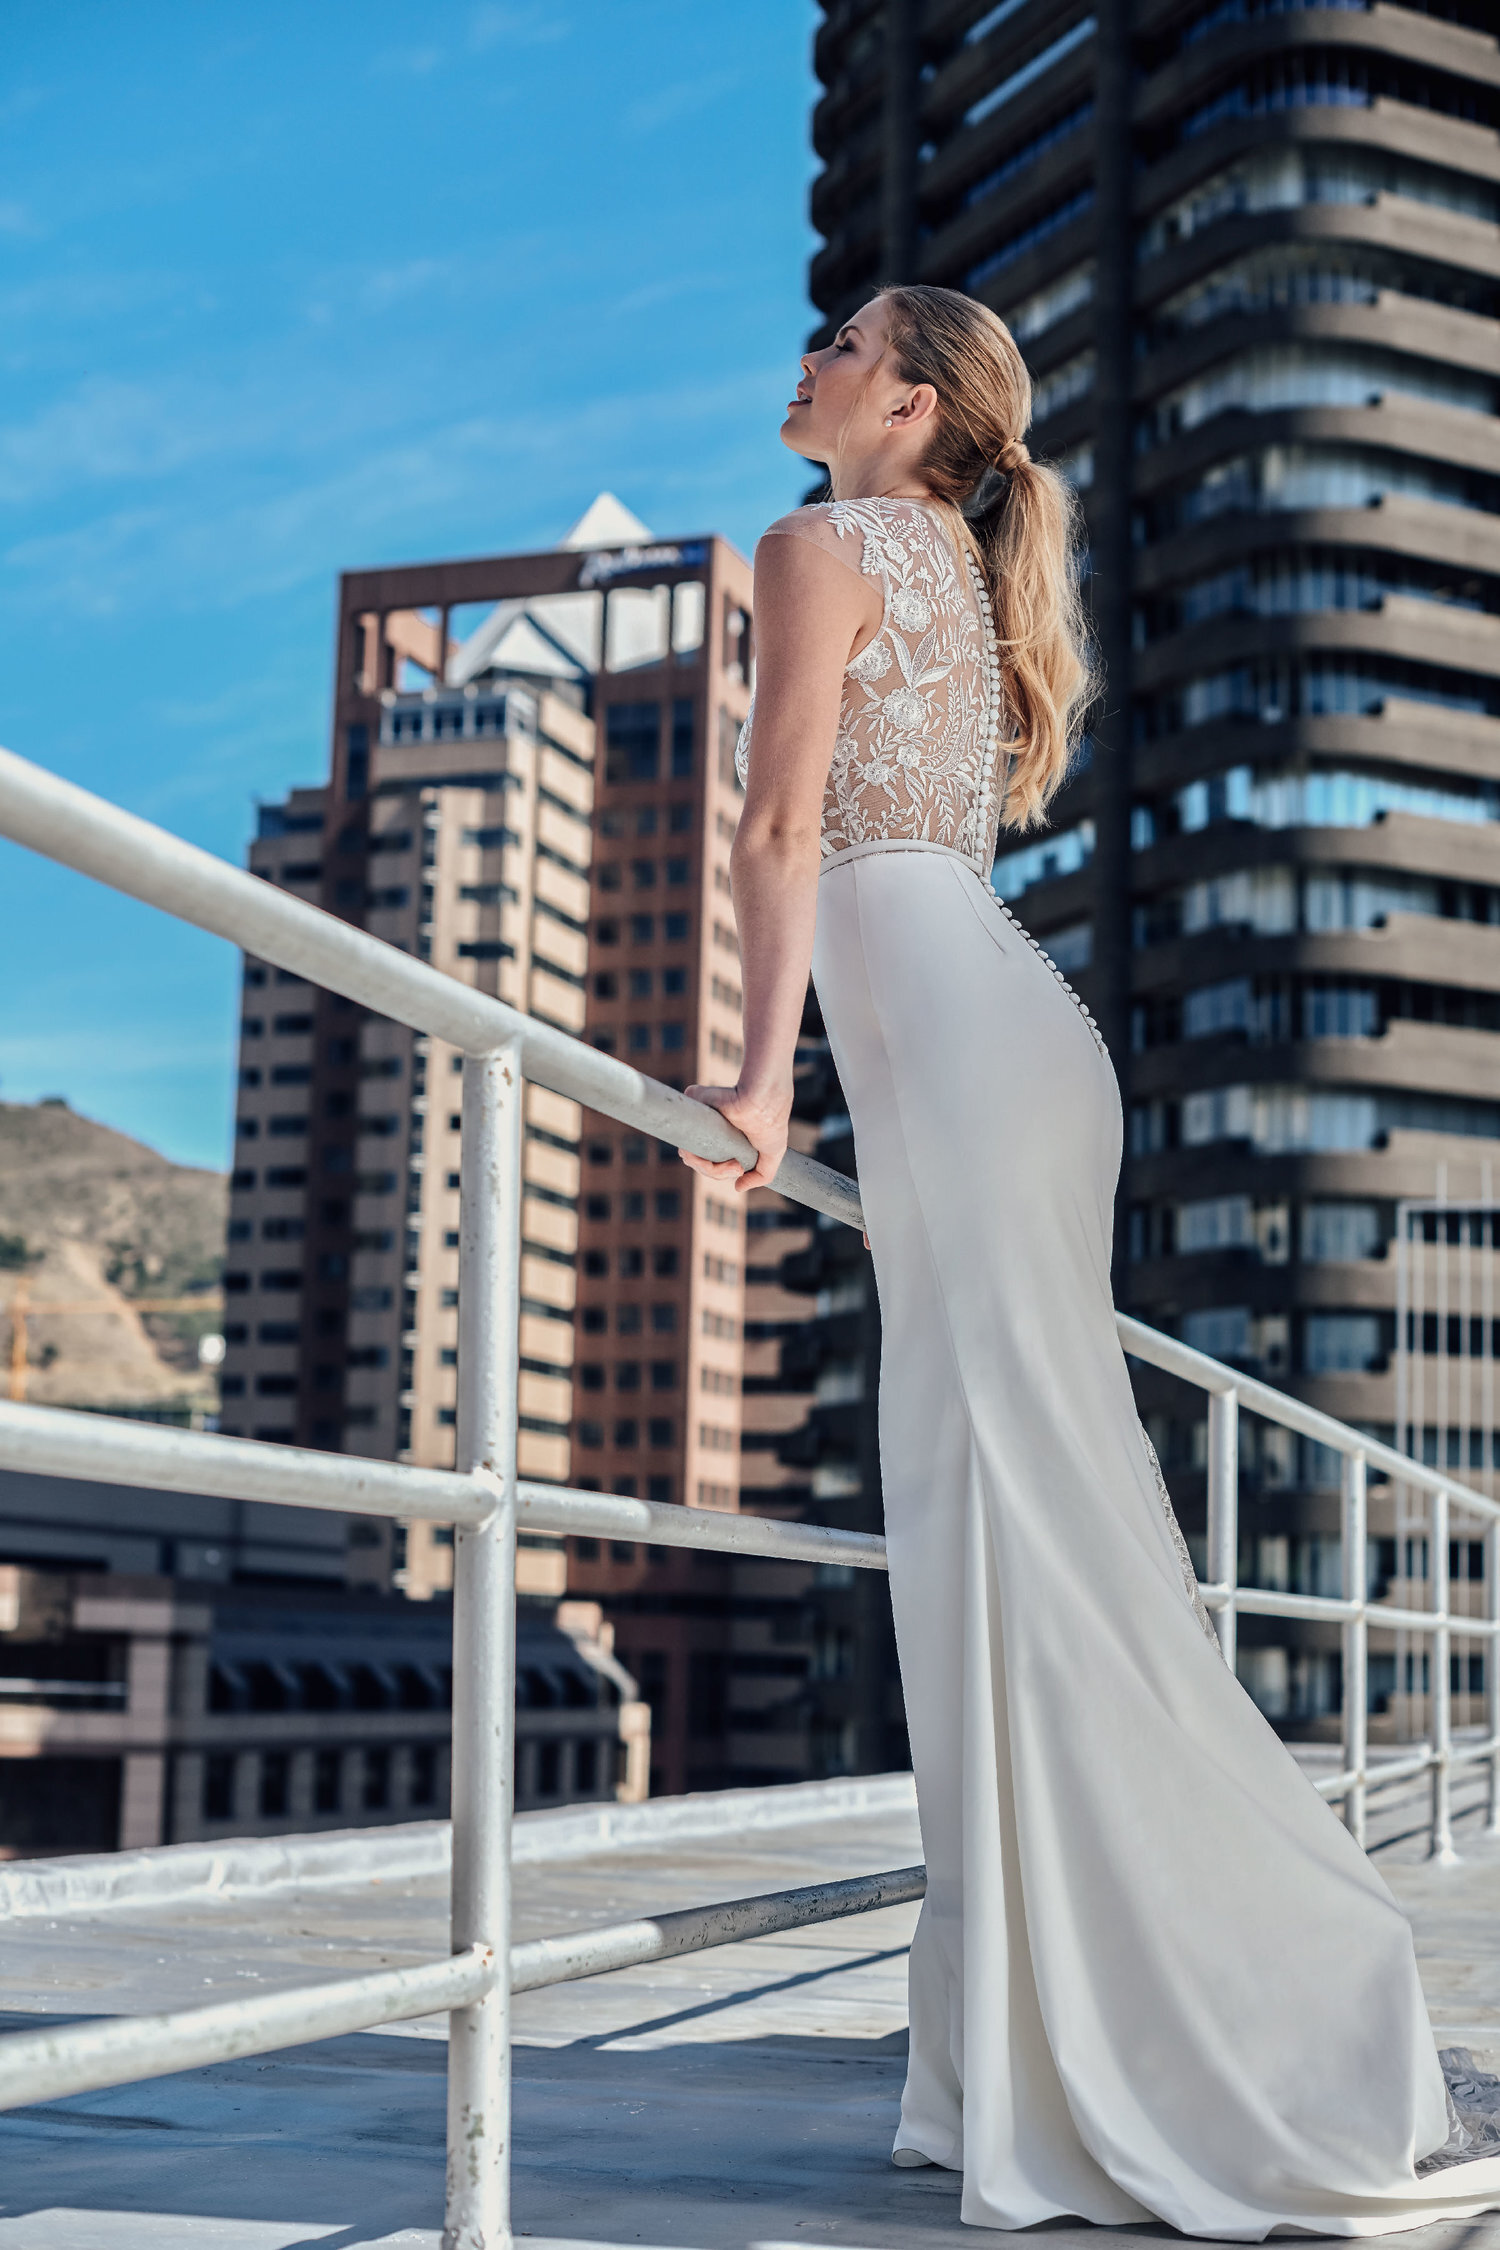 viola - The Viola Gown features a unique polo neckline for a modern take on Victorian style. A floral lace bodice is paired with a simple yet elegant white satin skirt that moves with you, and the floral lace train will make a dramatic impact from behind.